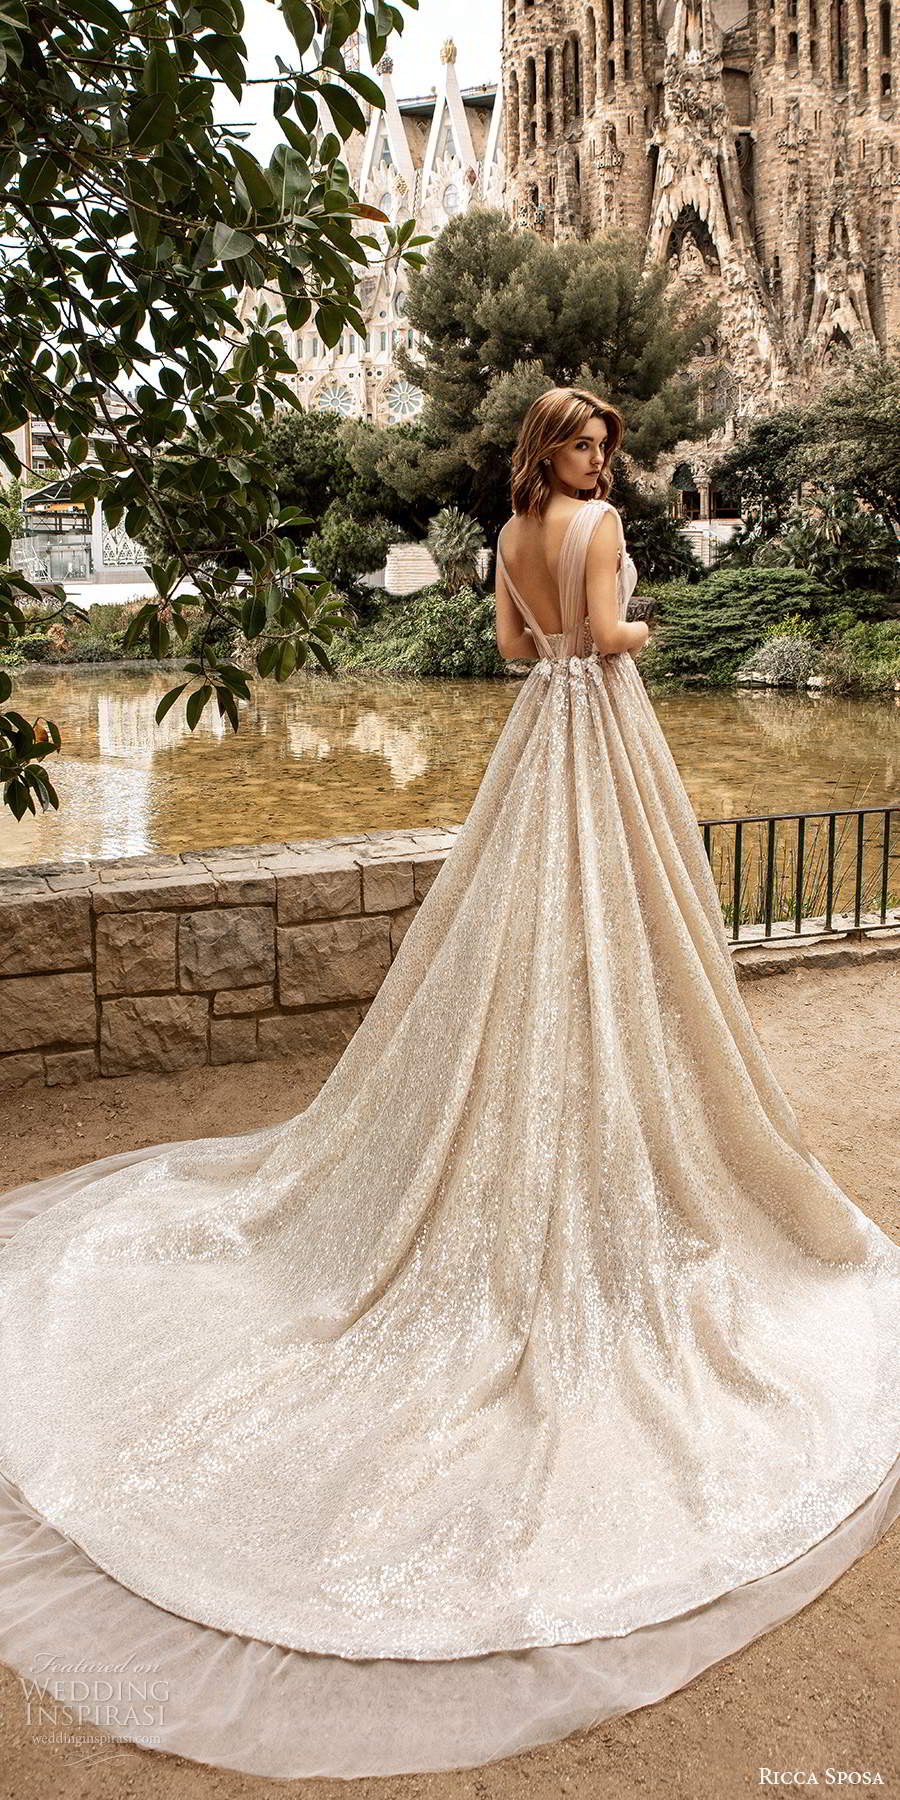 ricca sposa 2020 barcelona bridal off shoulder sweetheart neckline ruched bodice fully embellished romantic glitzy a line ball gown wedding dress v back cathedral train (1) bv